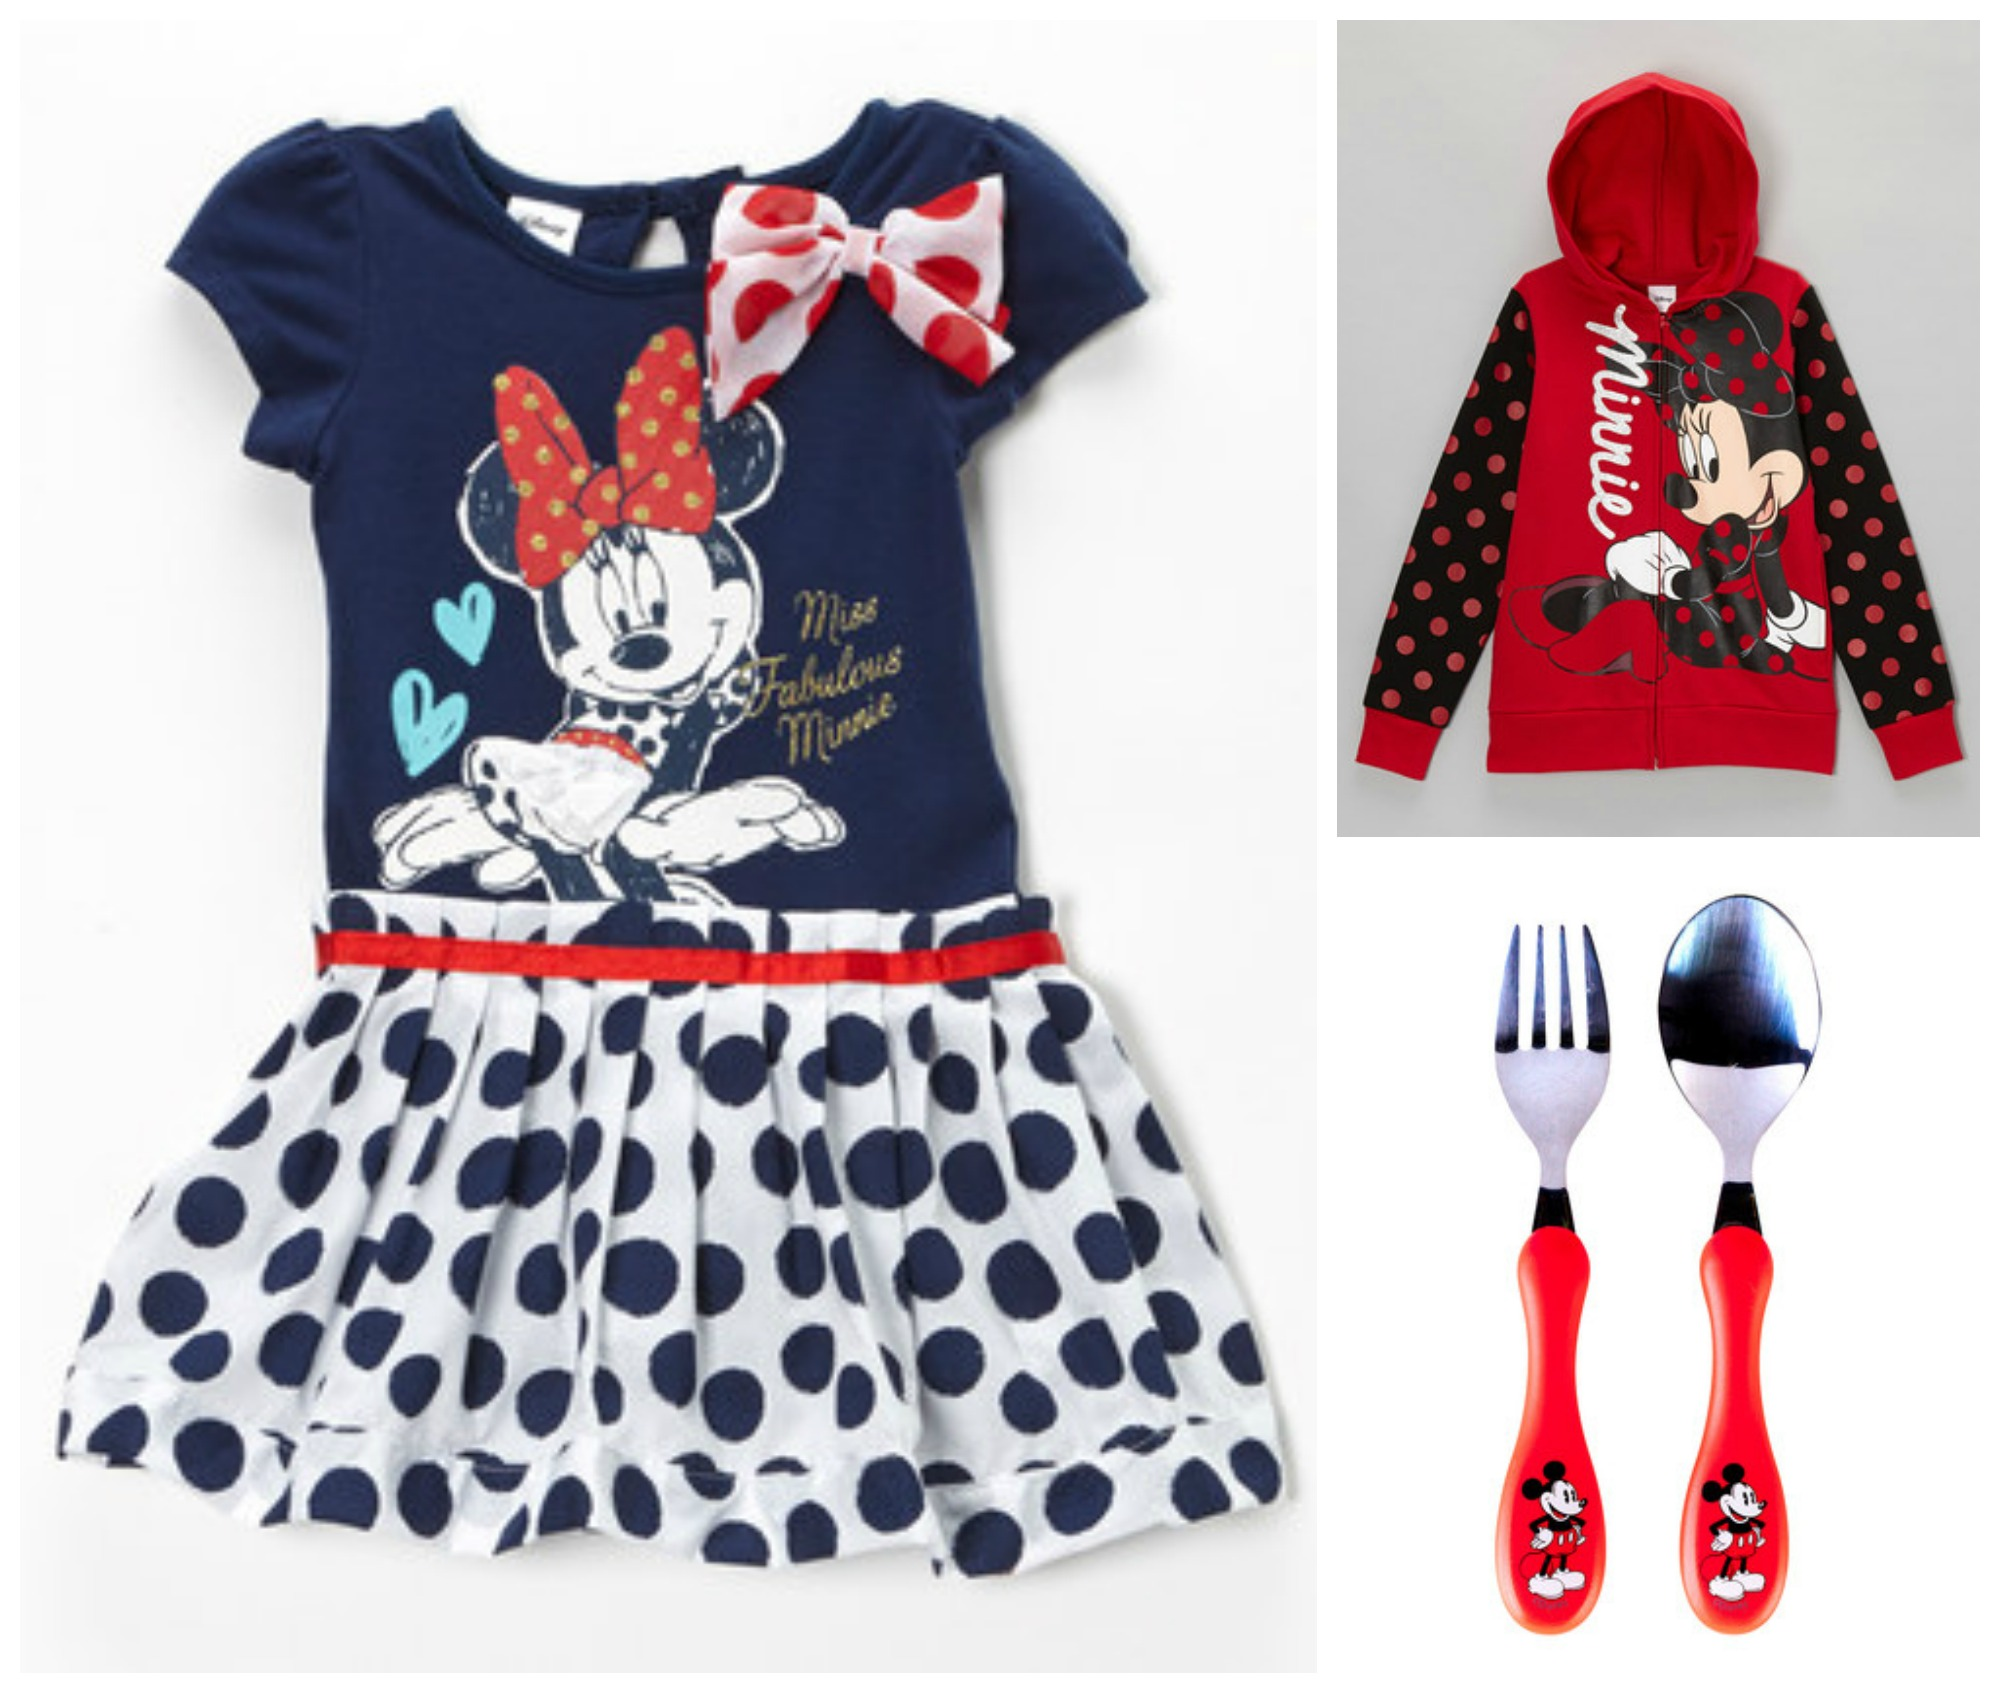 Mickey And Minnie Mouse Clothing Toys And More From Just